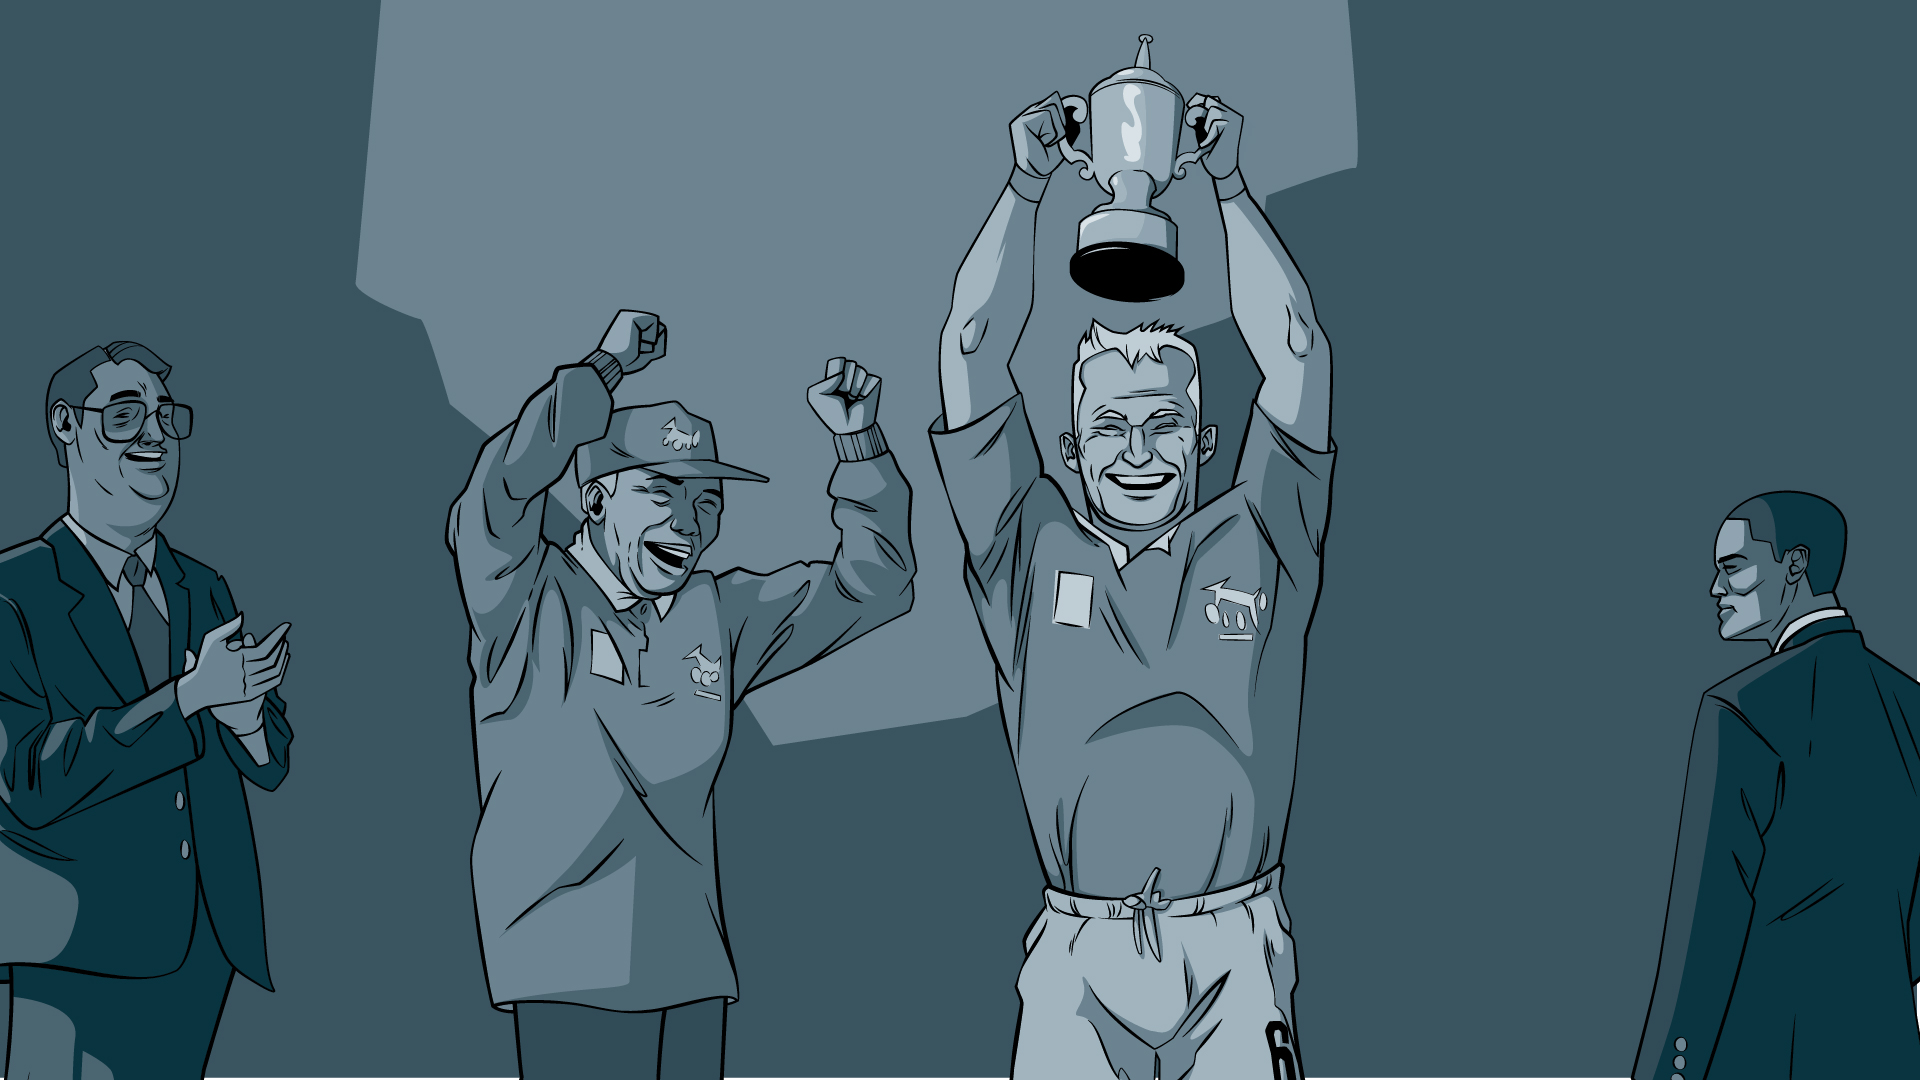 Super Impi 7 illustrated scene trophy rugby world cup for animation